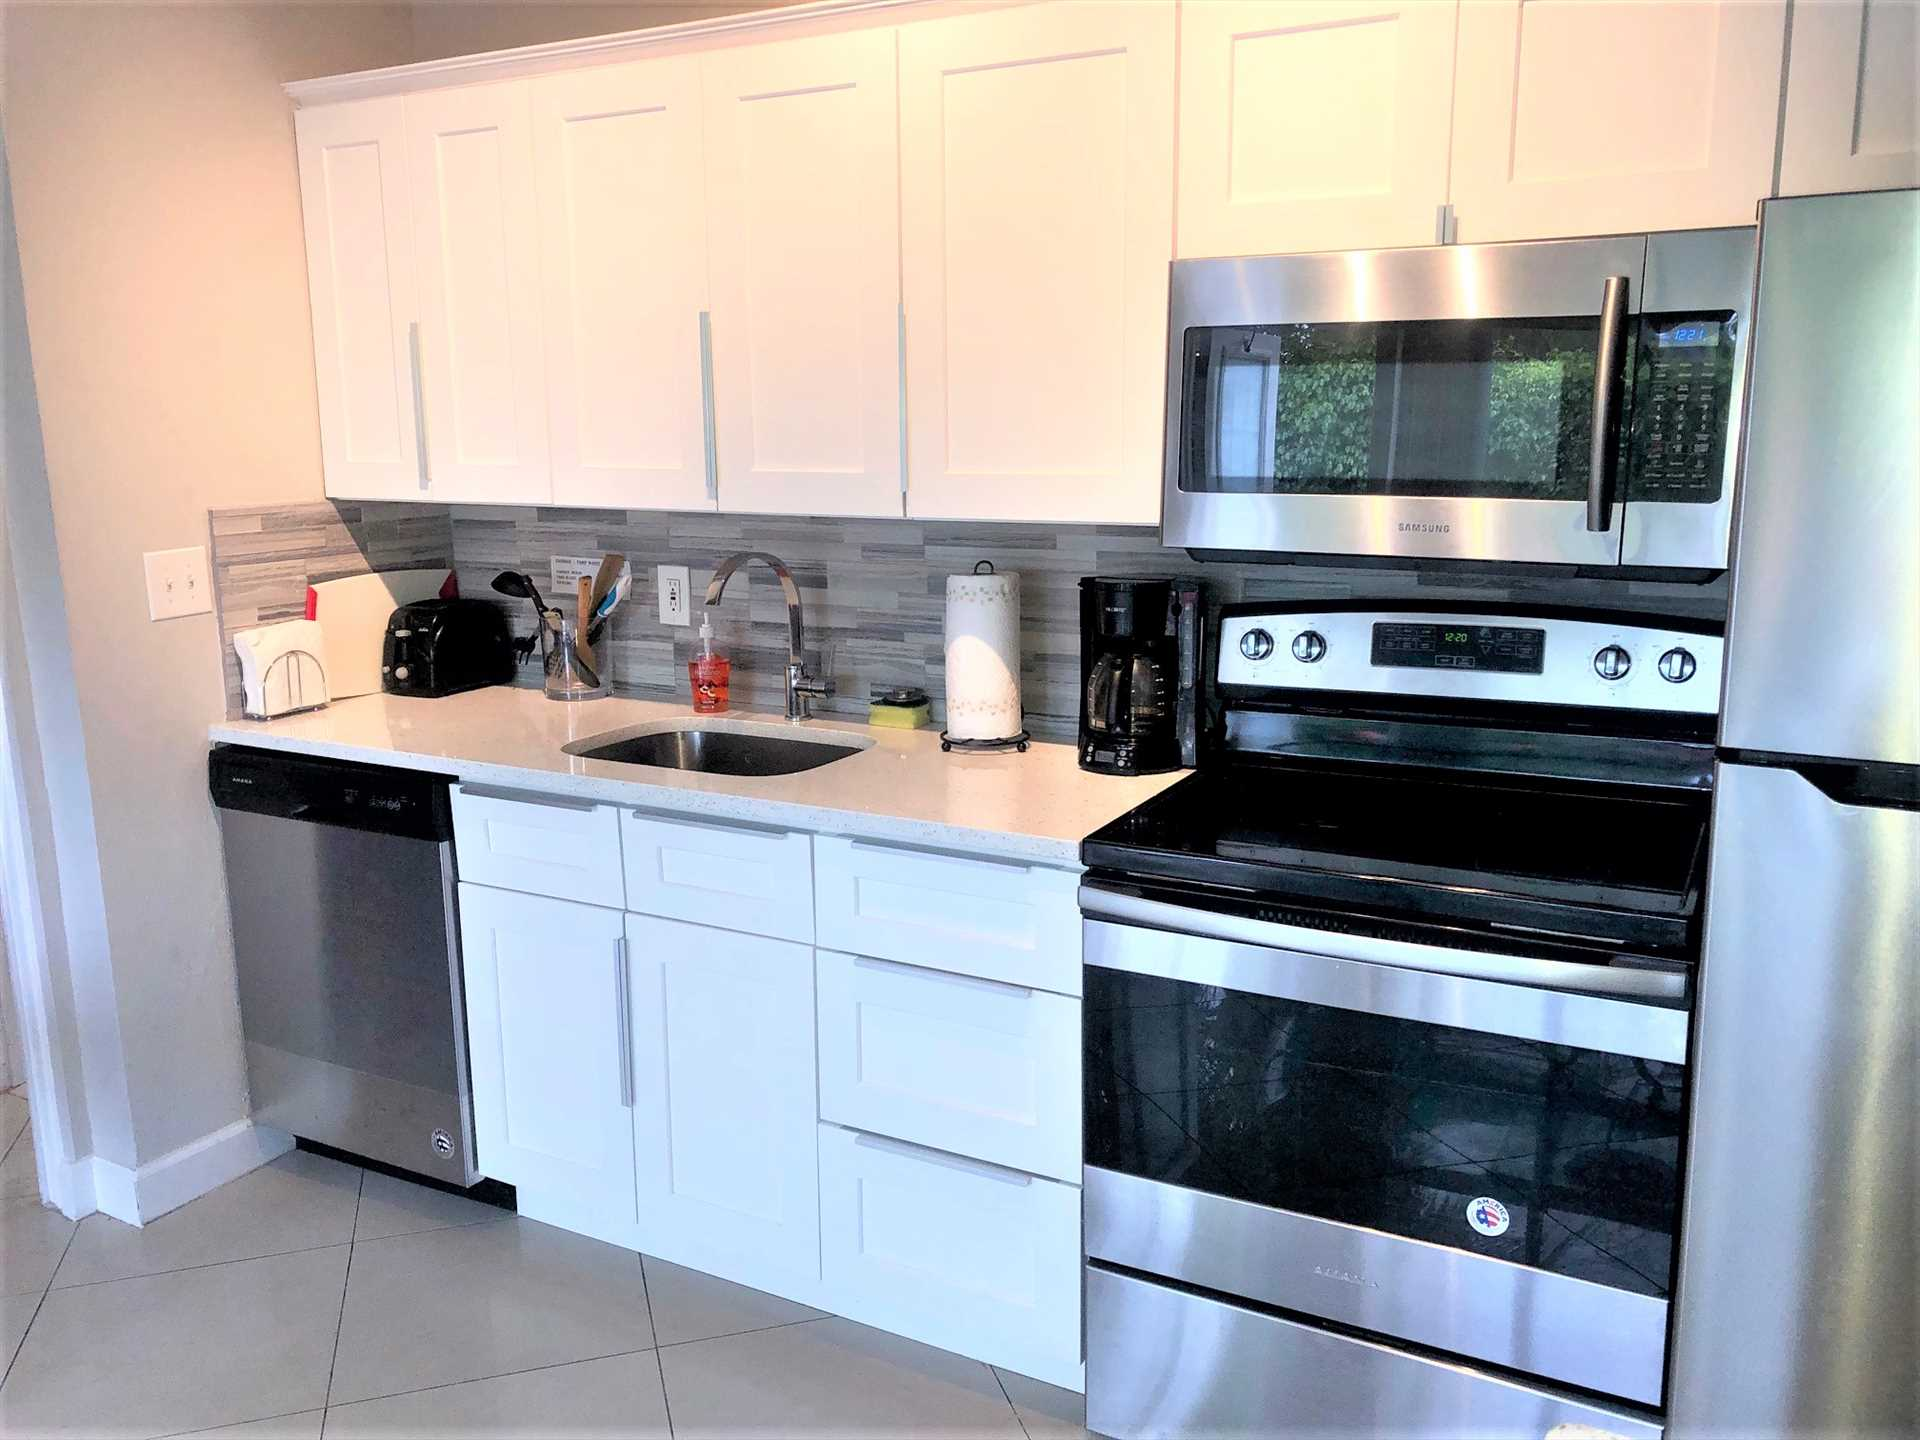 Kitchen has all new stainless appliances.